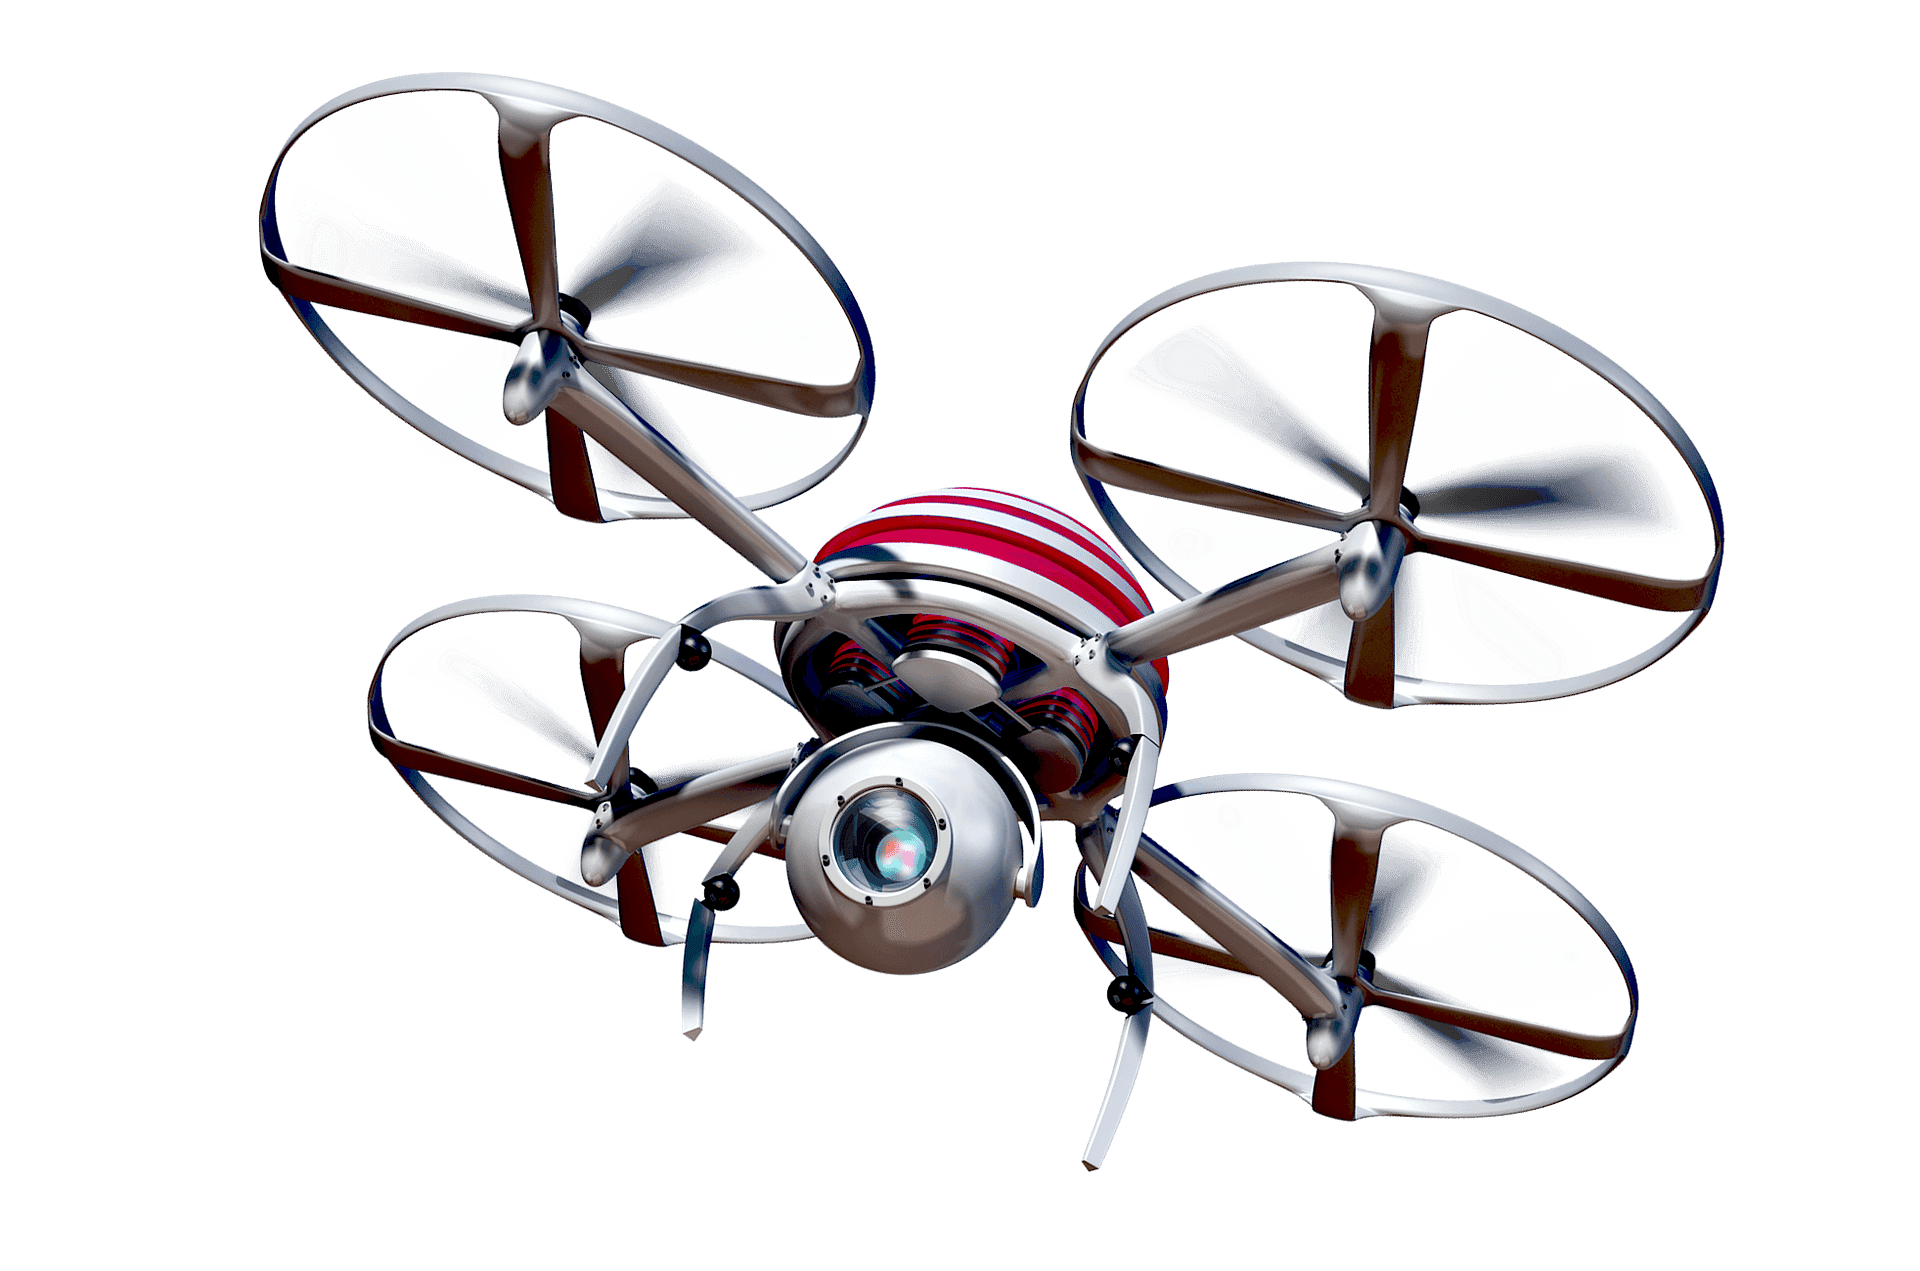 content/da-dk/images/repository/isc/2020/a-spy-drone-with-large-camera-lens.png